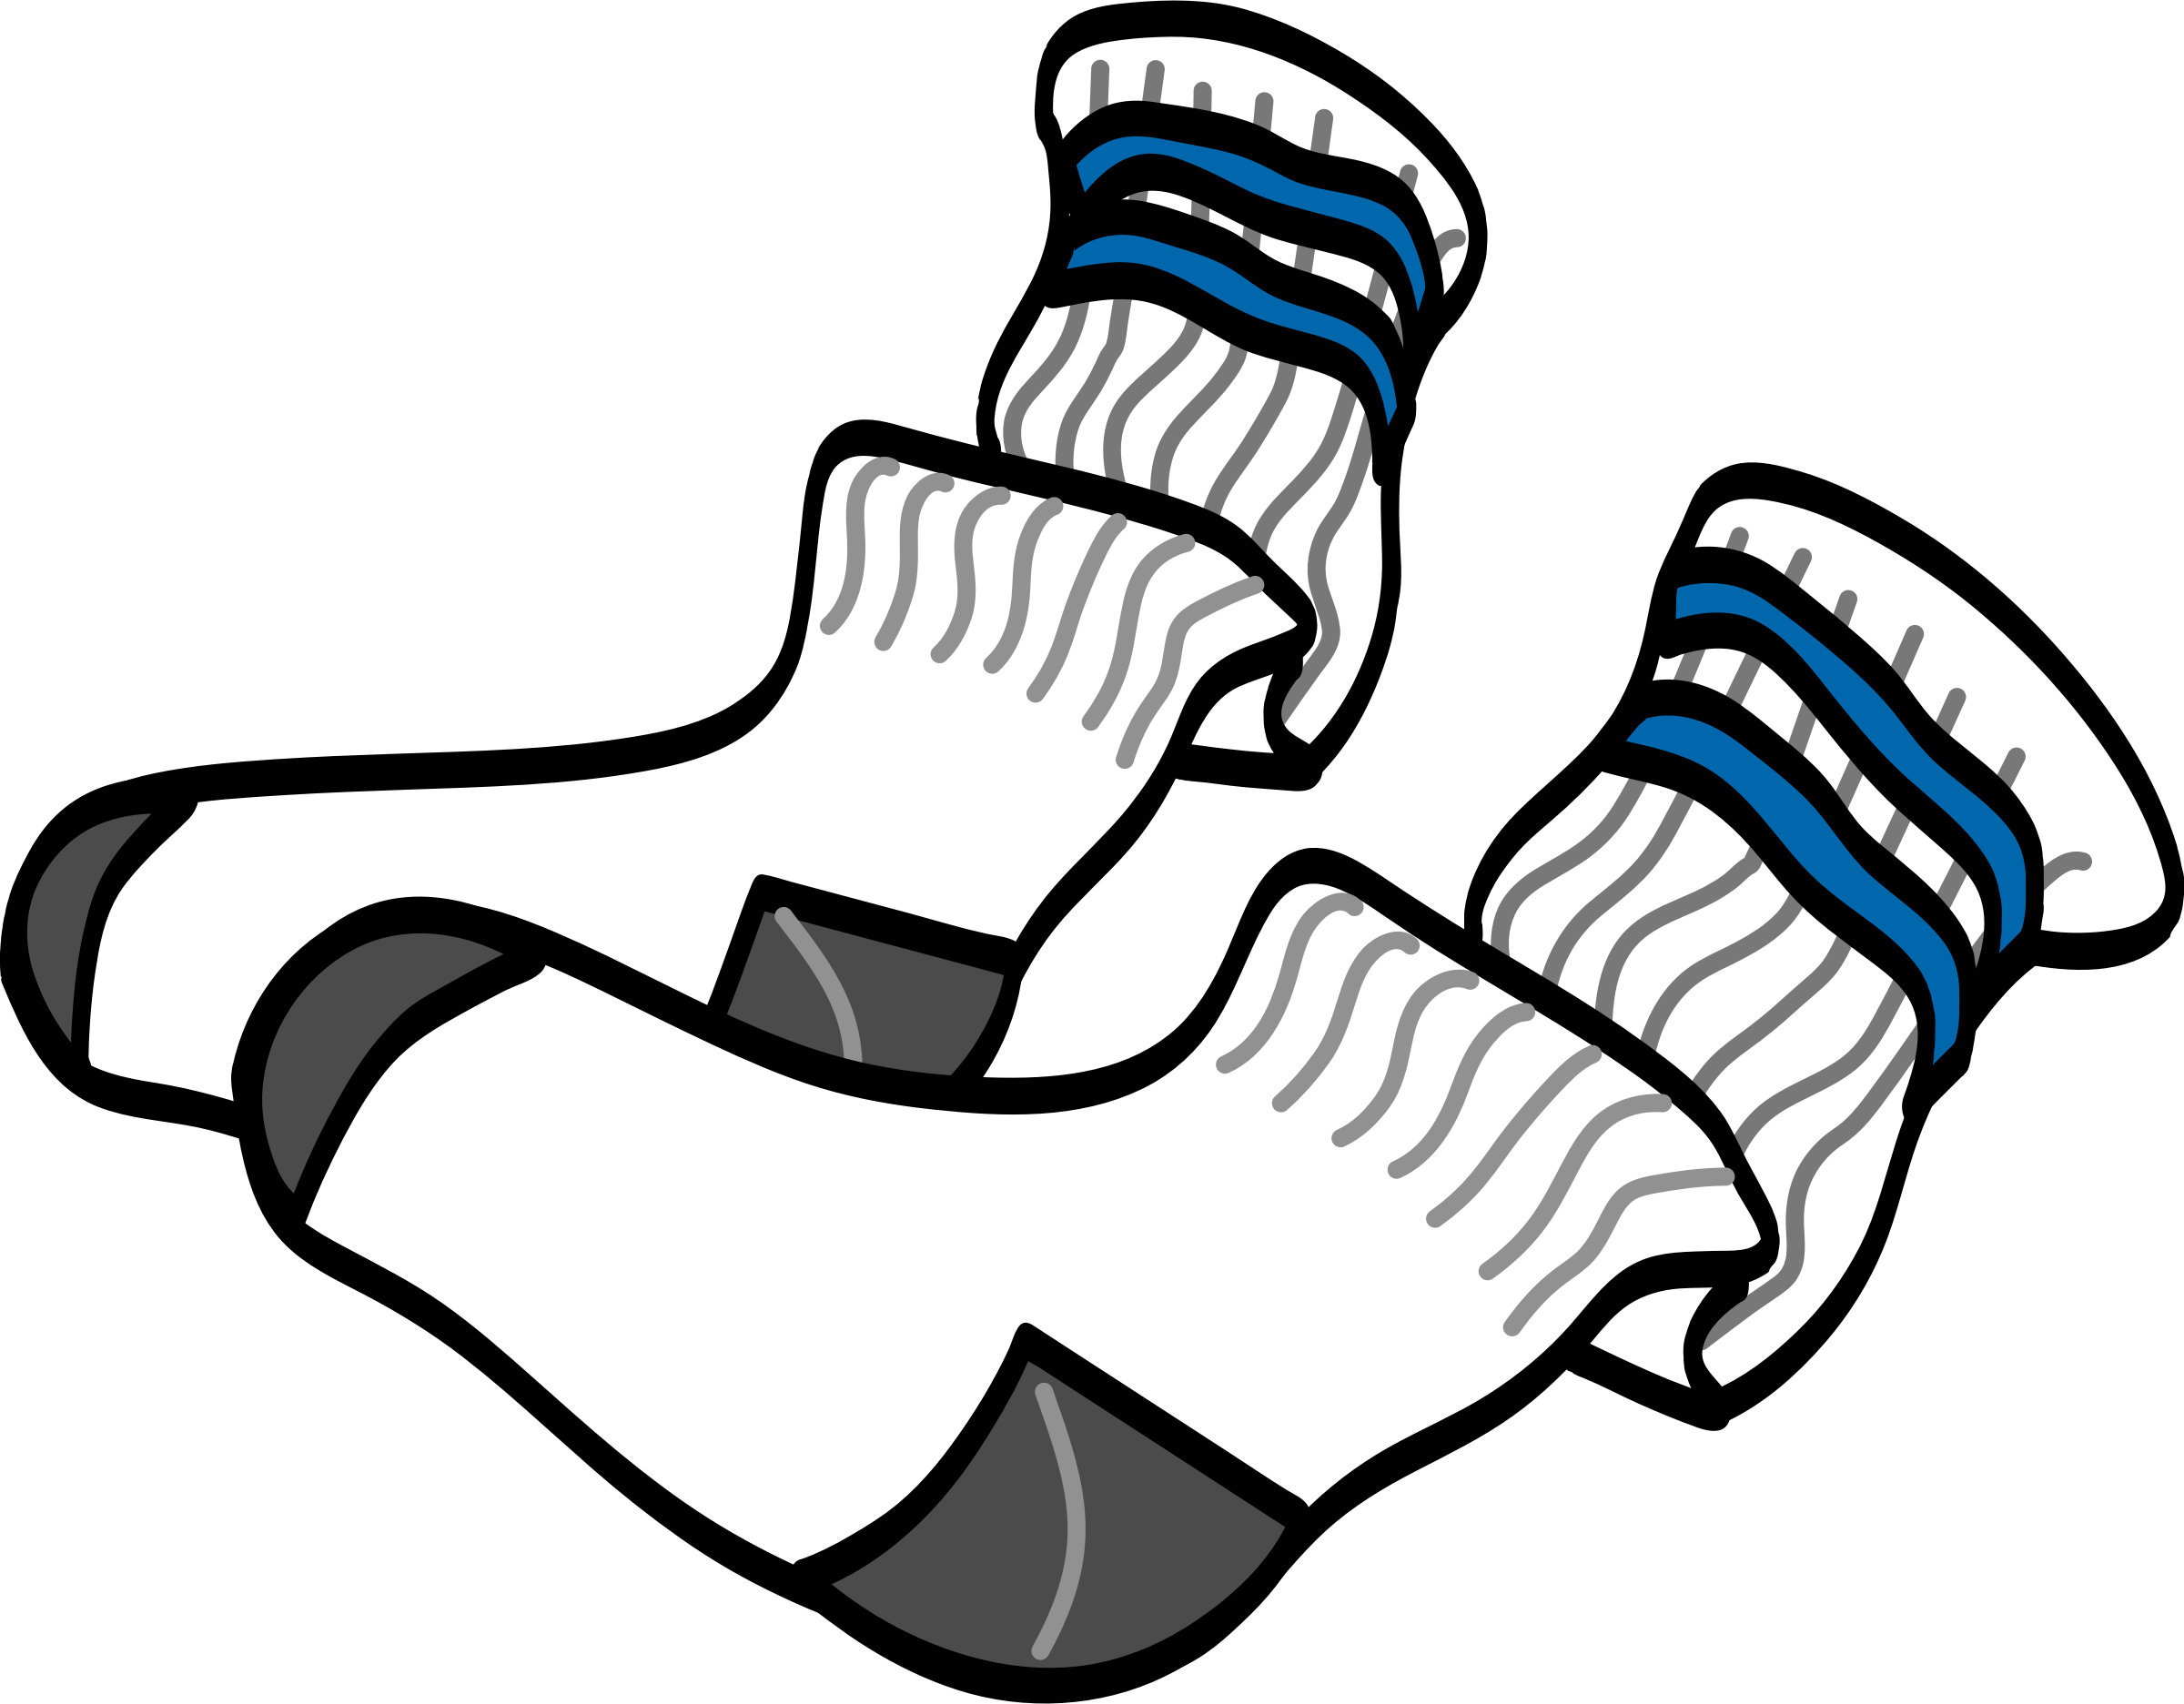 Clipart socks winged. Athletic crew icons png